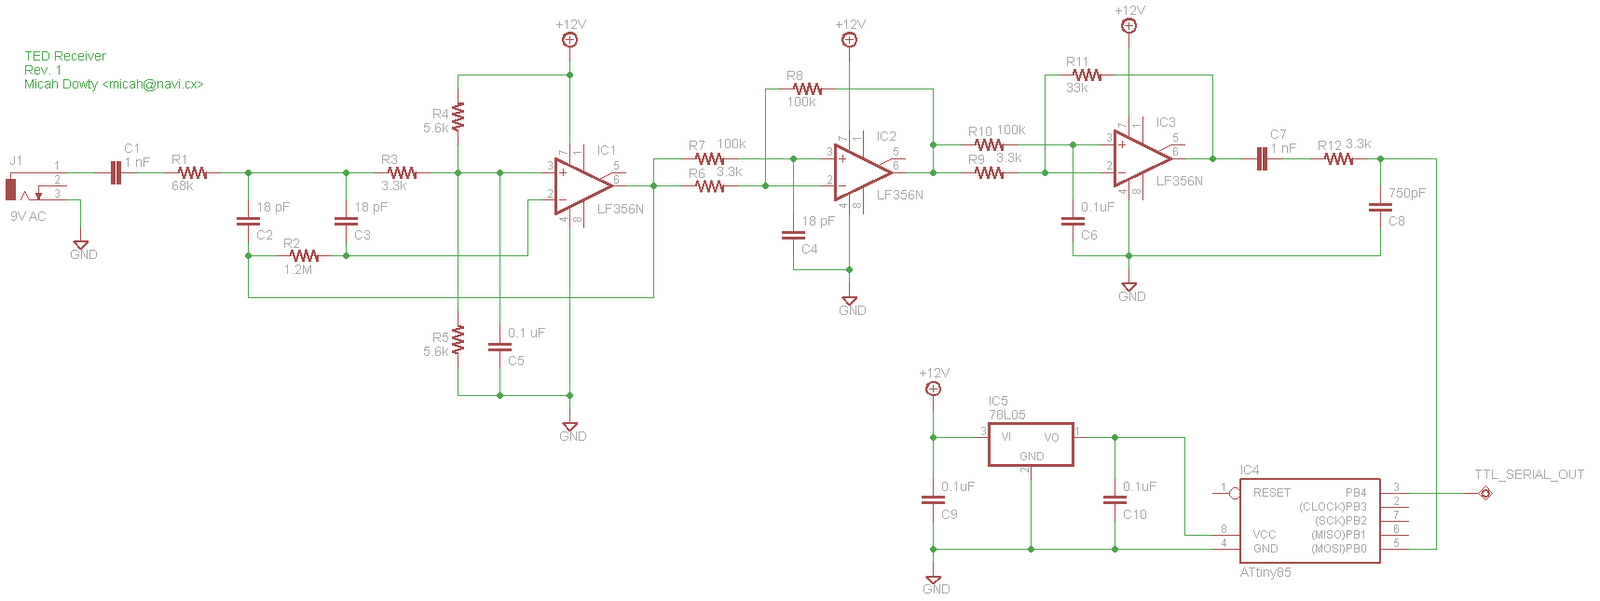 DoubleDelta Dual likewise Vfd Wiring Diagram Parallel additionally Abb Vfd Wiring Diagram likewise European Voltage Wiring besides Showthread. on eurodrive wiring diagrams